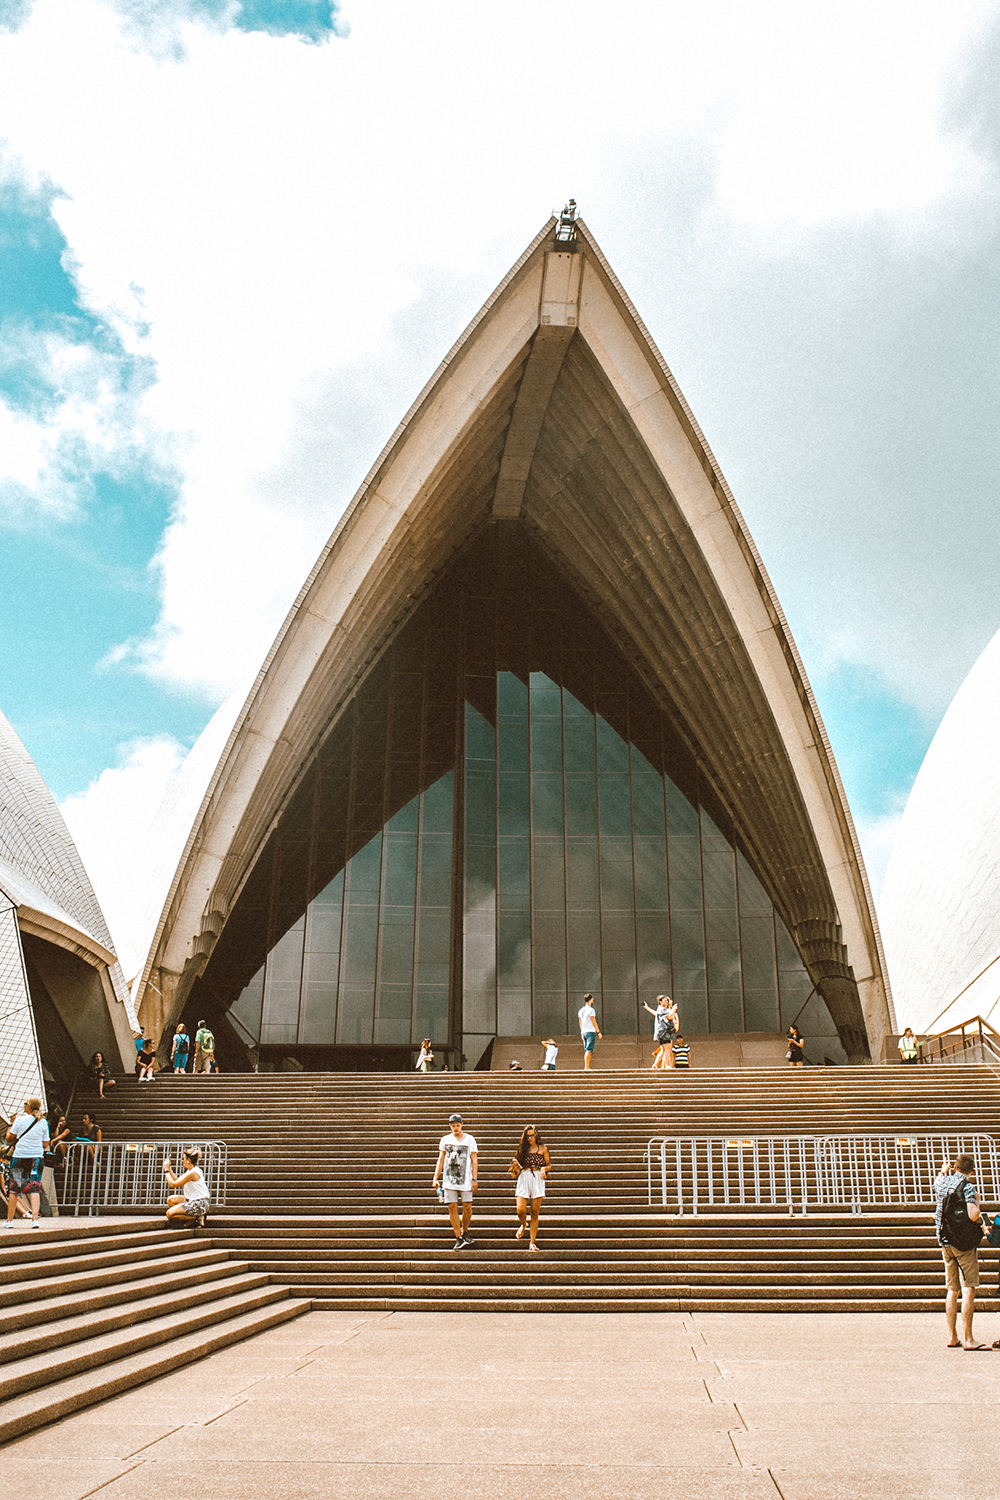 livvyland-blog-olivia-watson-austin-texas-fashion-travel-lifestyle-blogger-sydney-melbourne-australia-opera-house-2